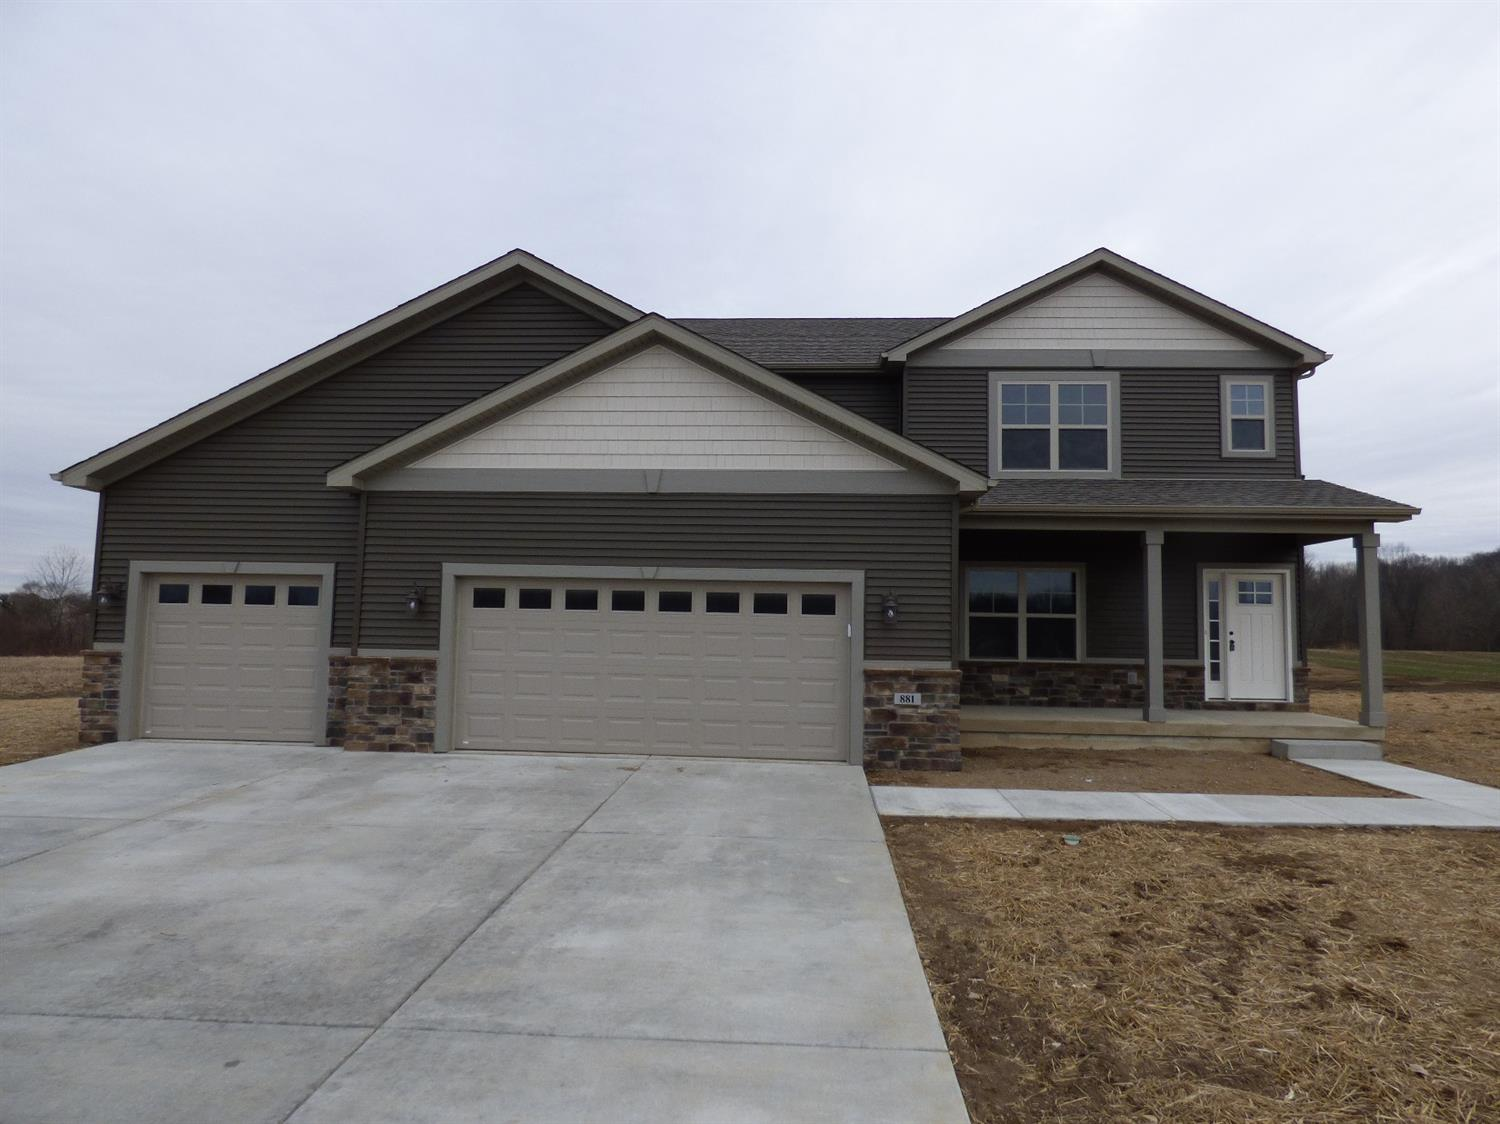 881 FARMVIEW DRIVE, VALPARAISO, IN 46383